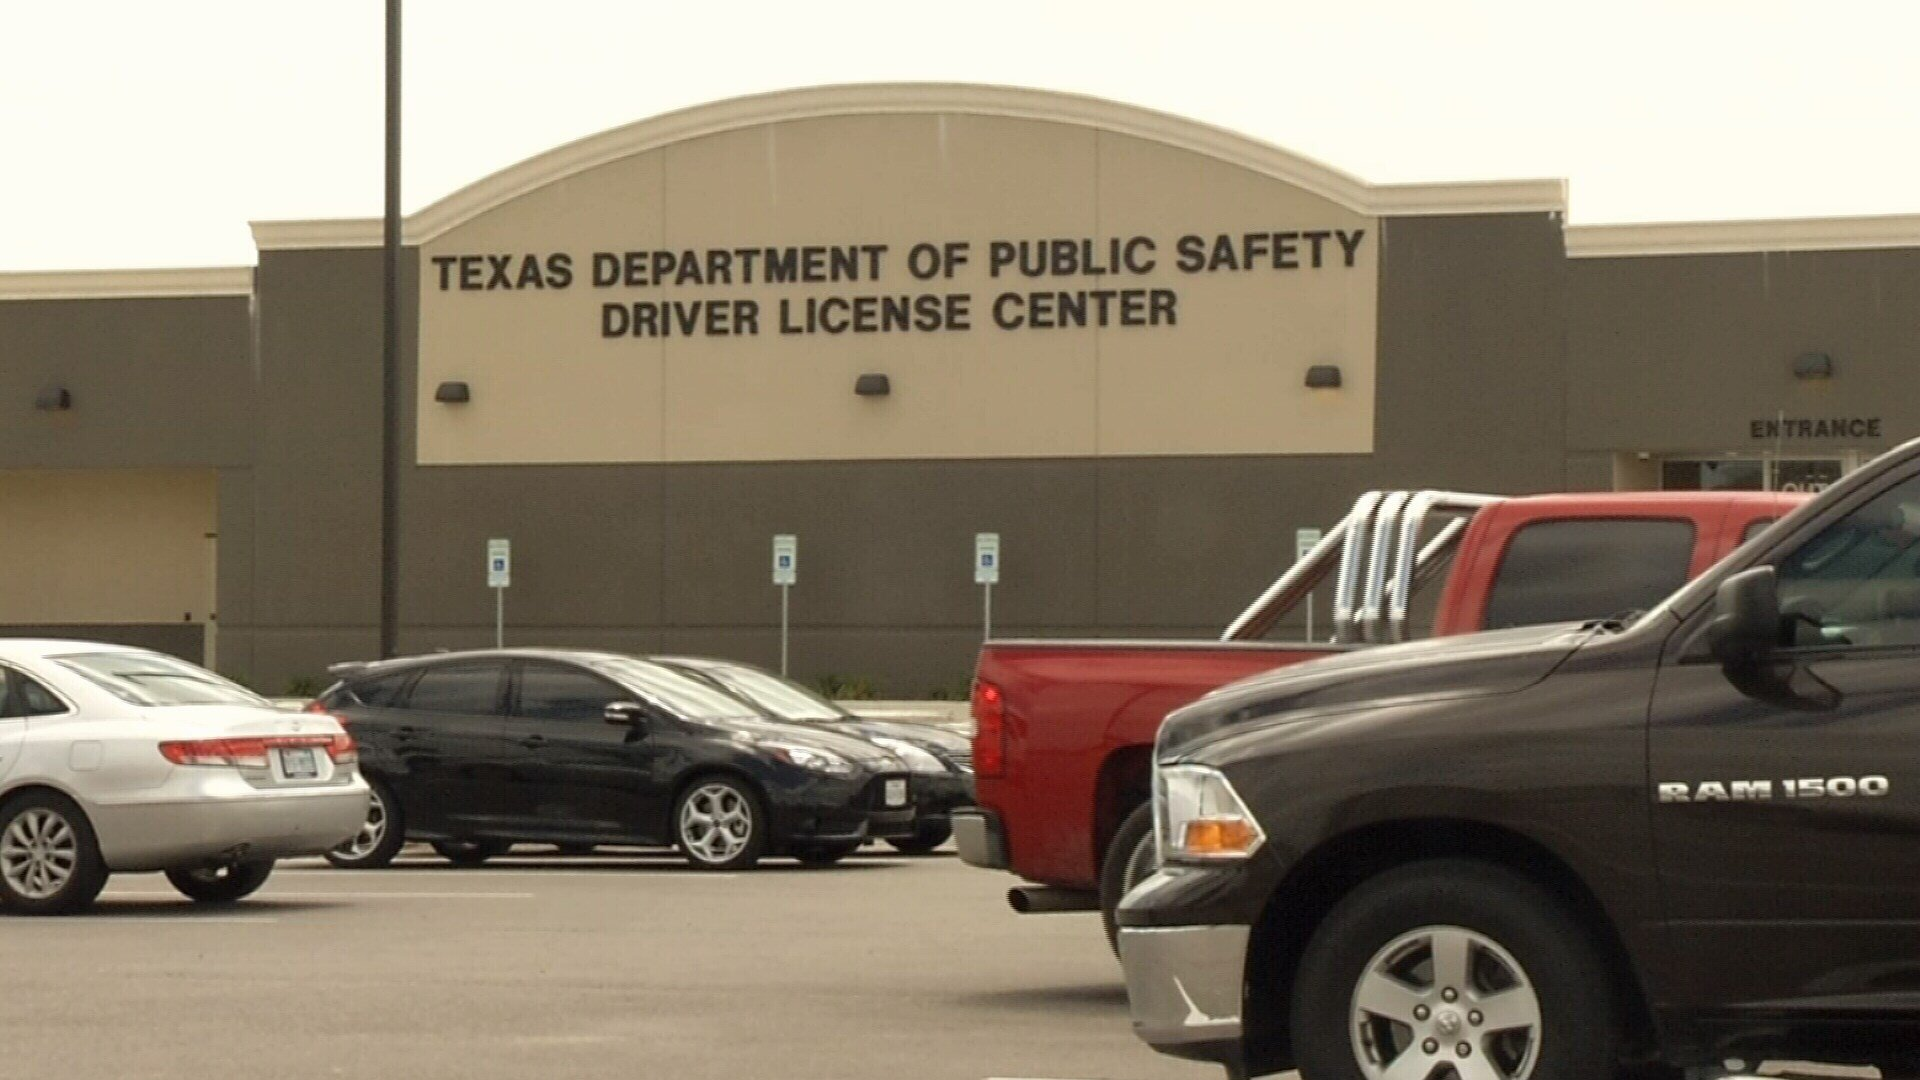 Tips to minimize your wait the next time you visit the dps tips to minimize your wait the next time you visit the dps kristv continuous news coverage corpus christi nvjuhfo Image collections